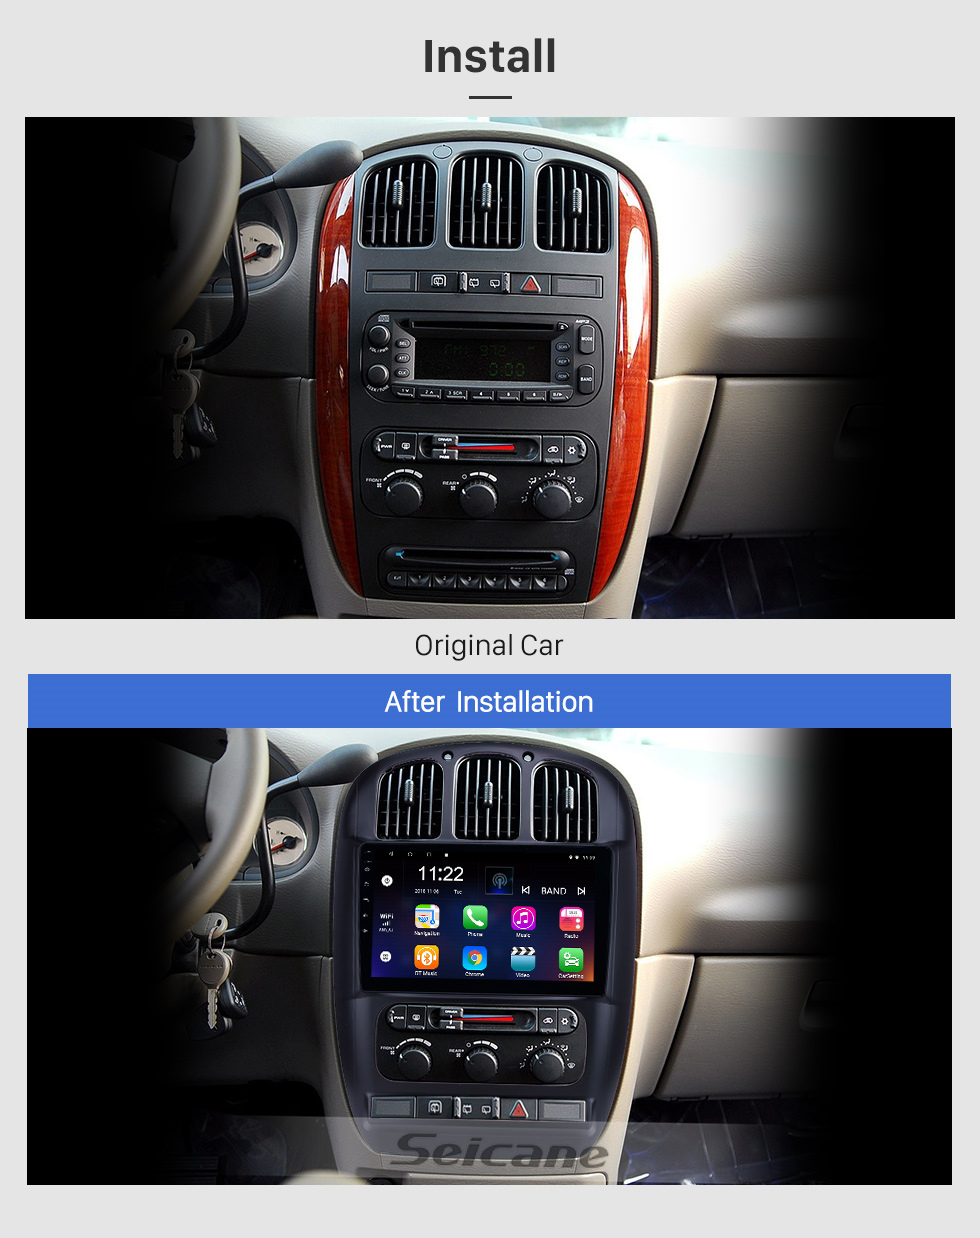 Seicane 10.1 inch GPS Navigation Radio Android 10.0 for 2006-2012 Chrysler Pacifica With HD Touchscreen Bluetooth support Carplay Backup camera